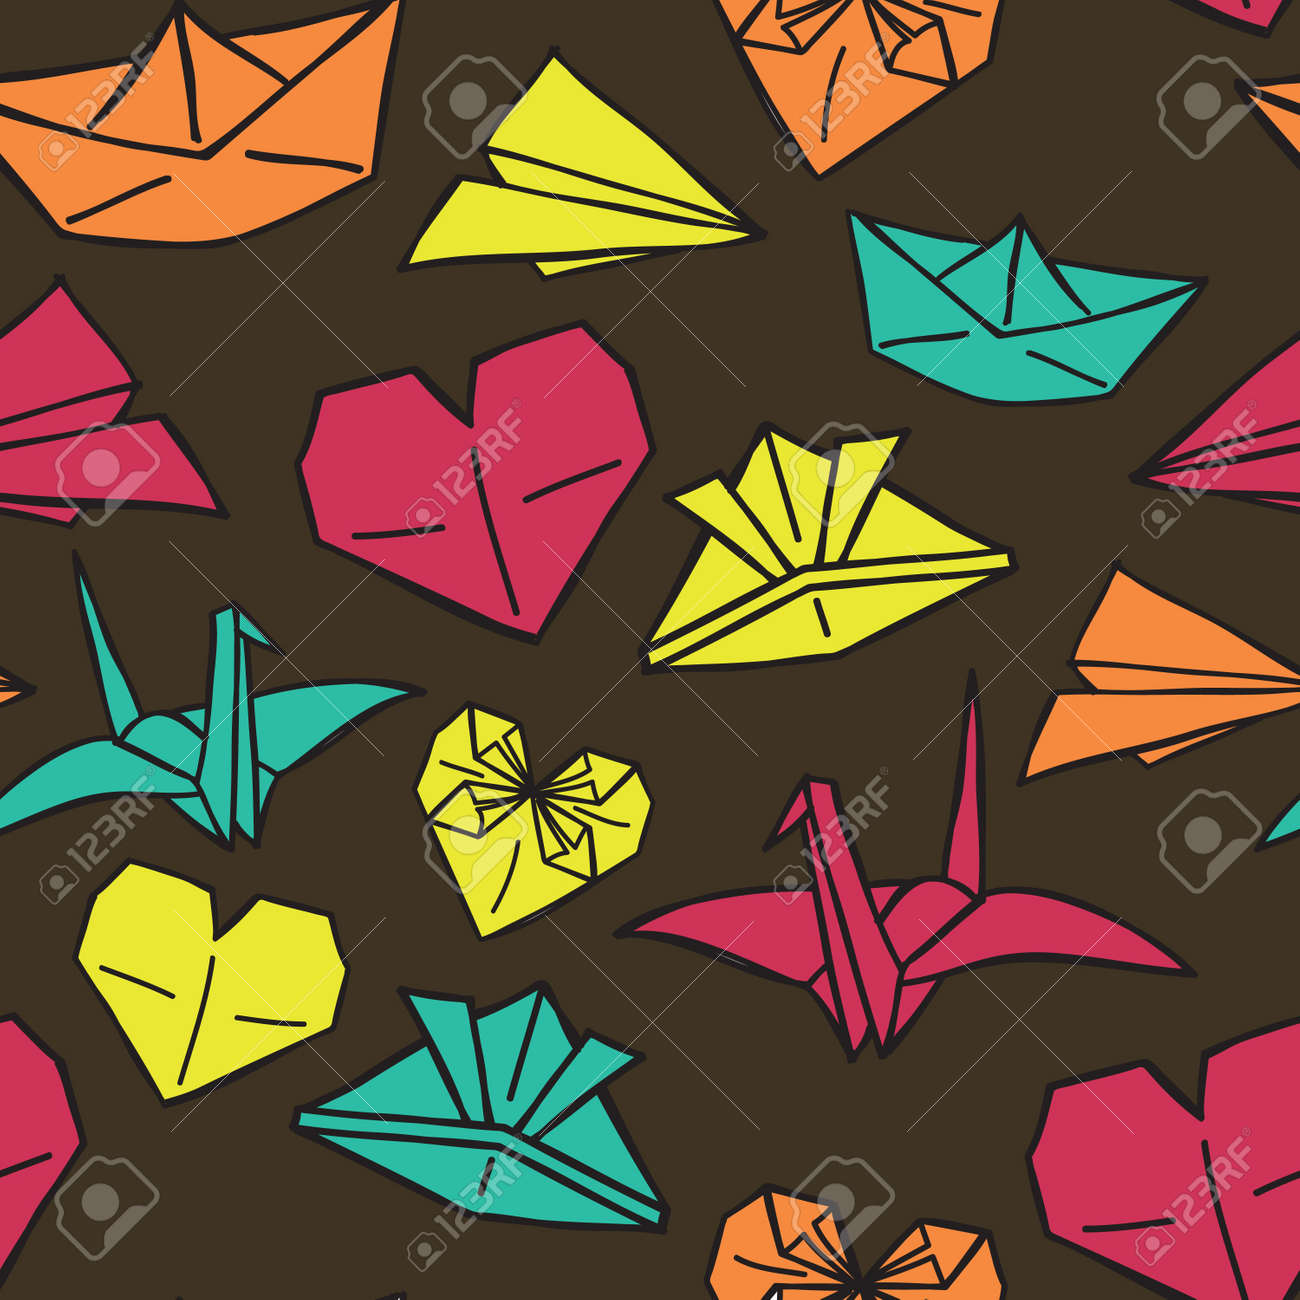 Vintage Origami Background Royalty Free Cliparts Vectors And Stock